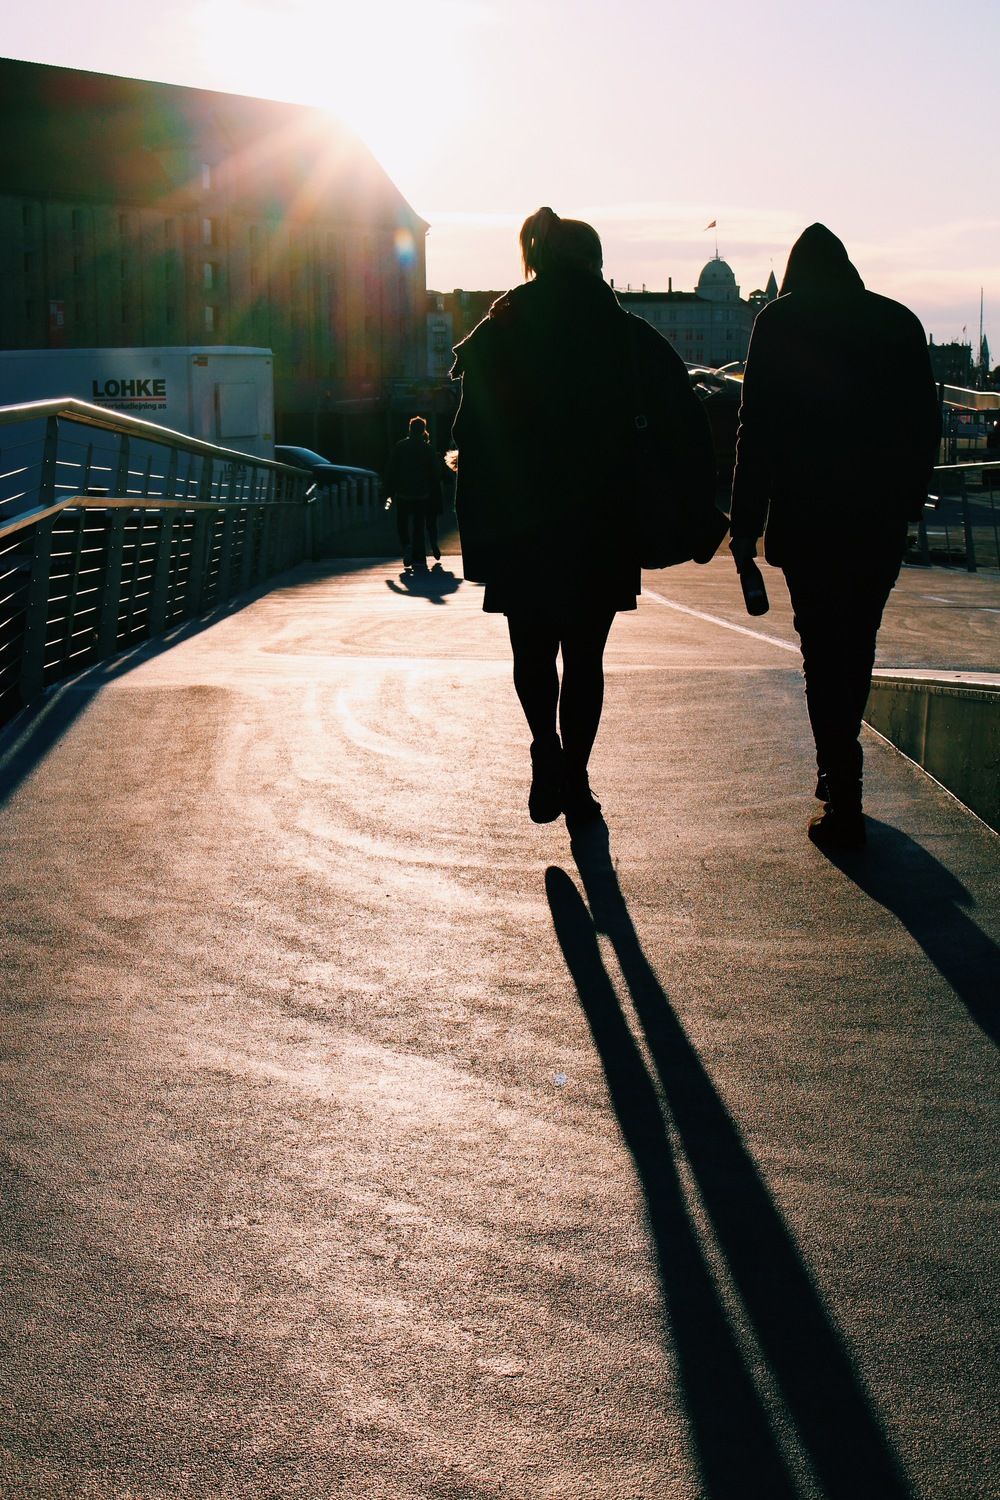 ppl walking shadow paper island.jpg